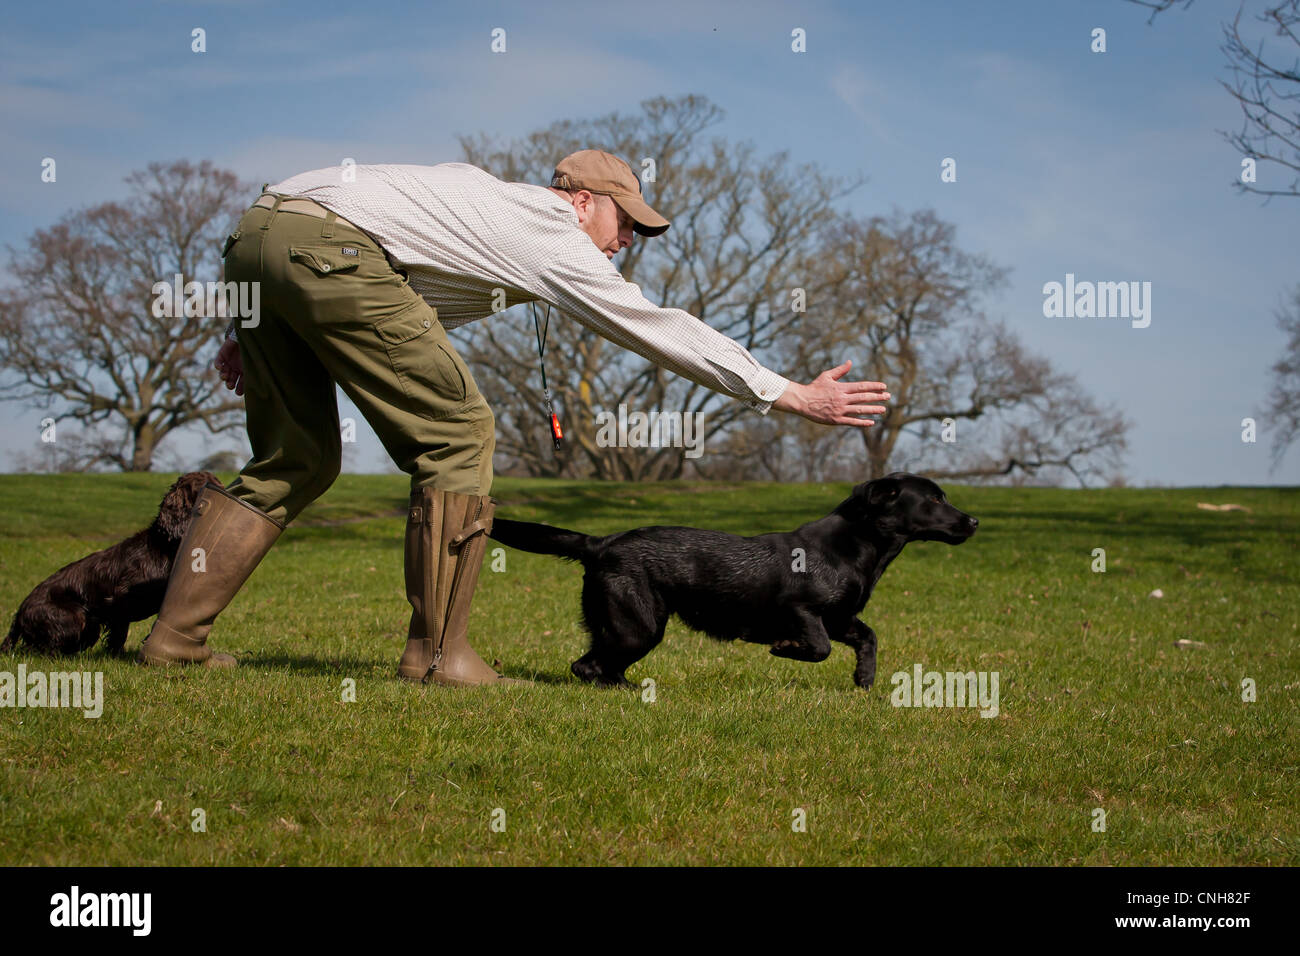 Gundog/ Dog Trainer with Black Labrador and Cocker Spaniel sending away in country setting during training session - Stock Image